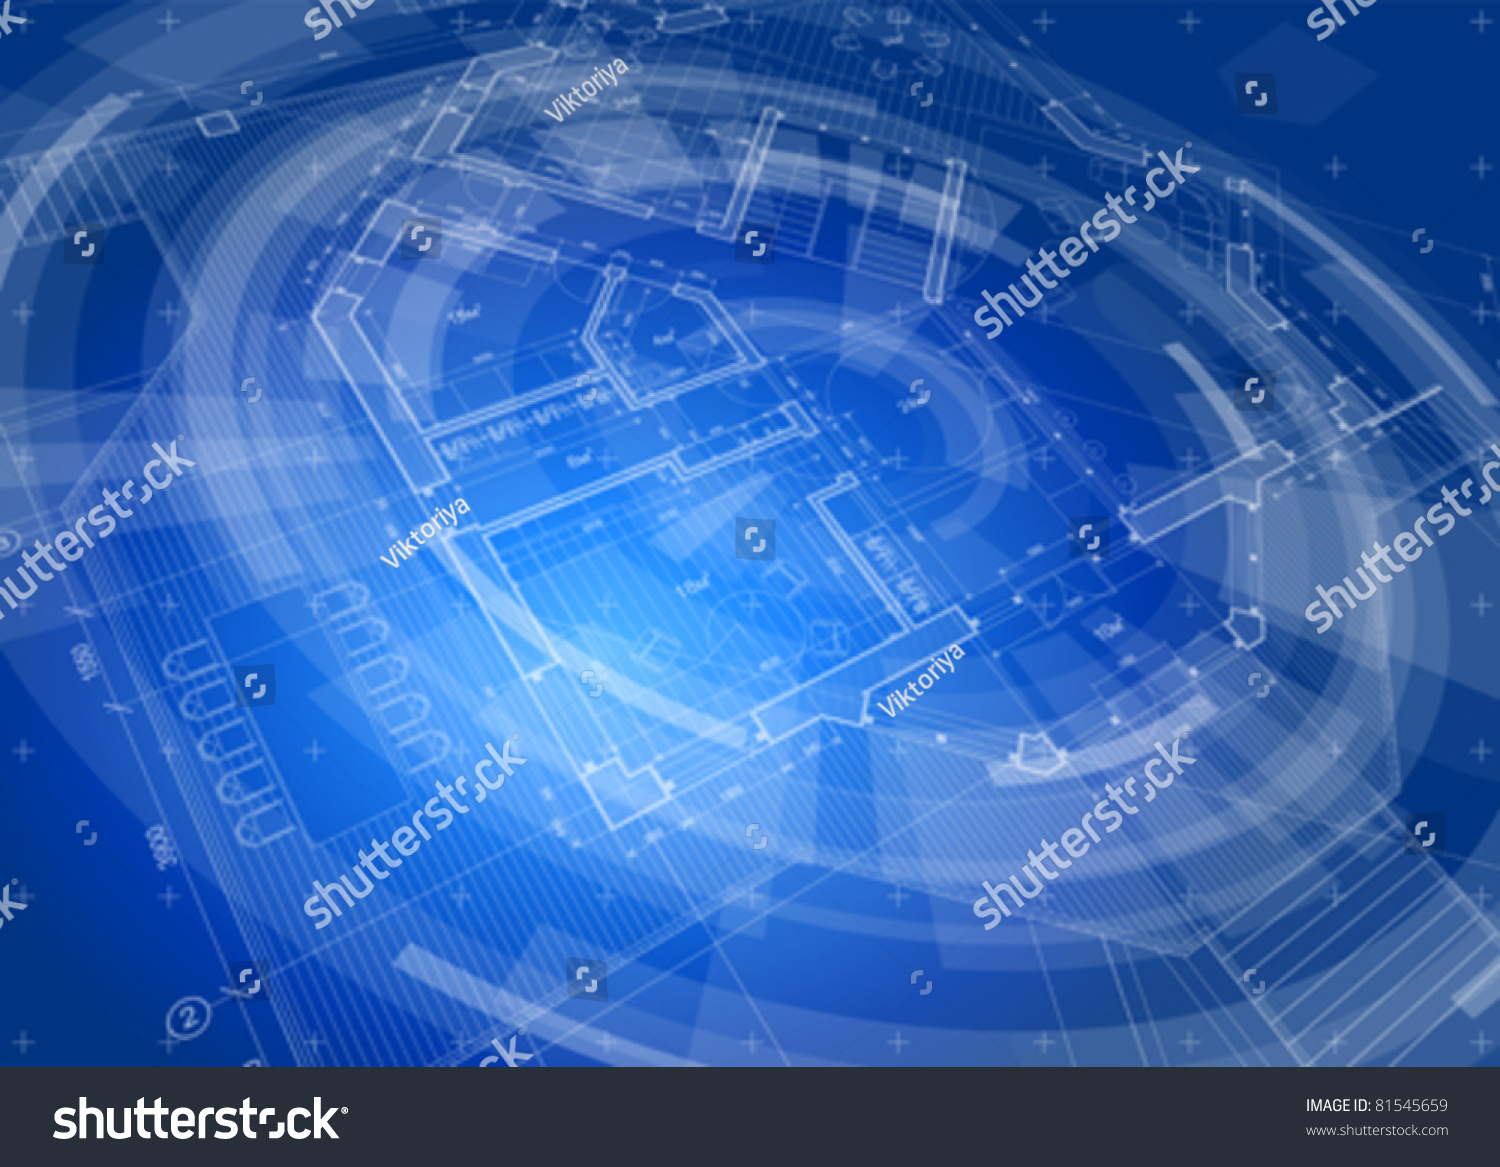 Architecture design blueprint house plan blue technology radial background vector illustration eps